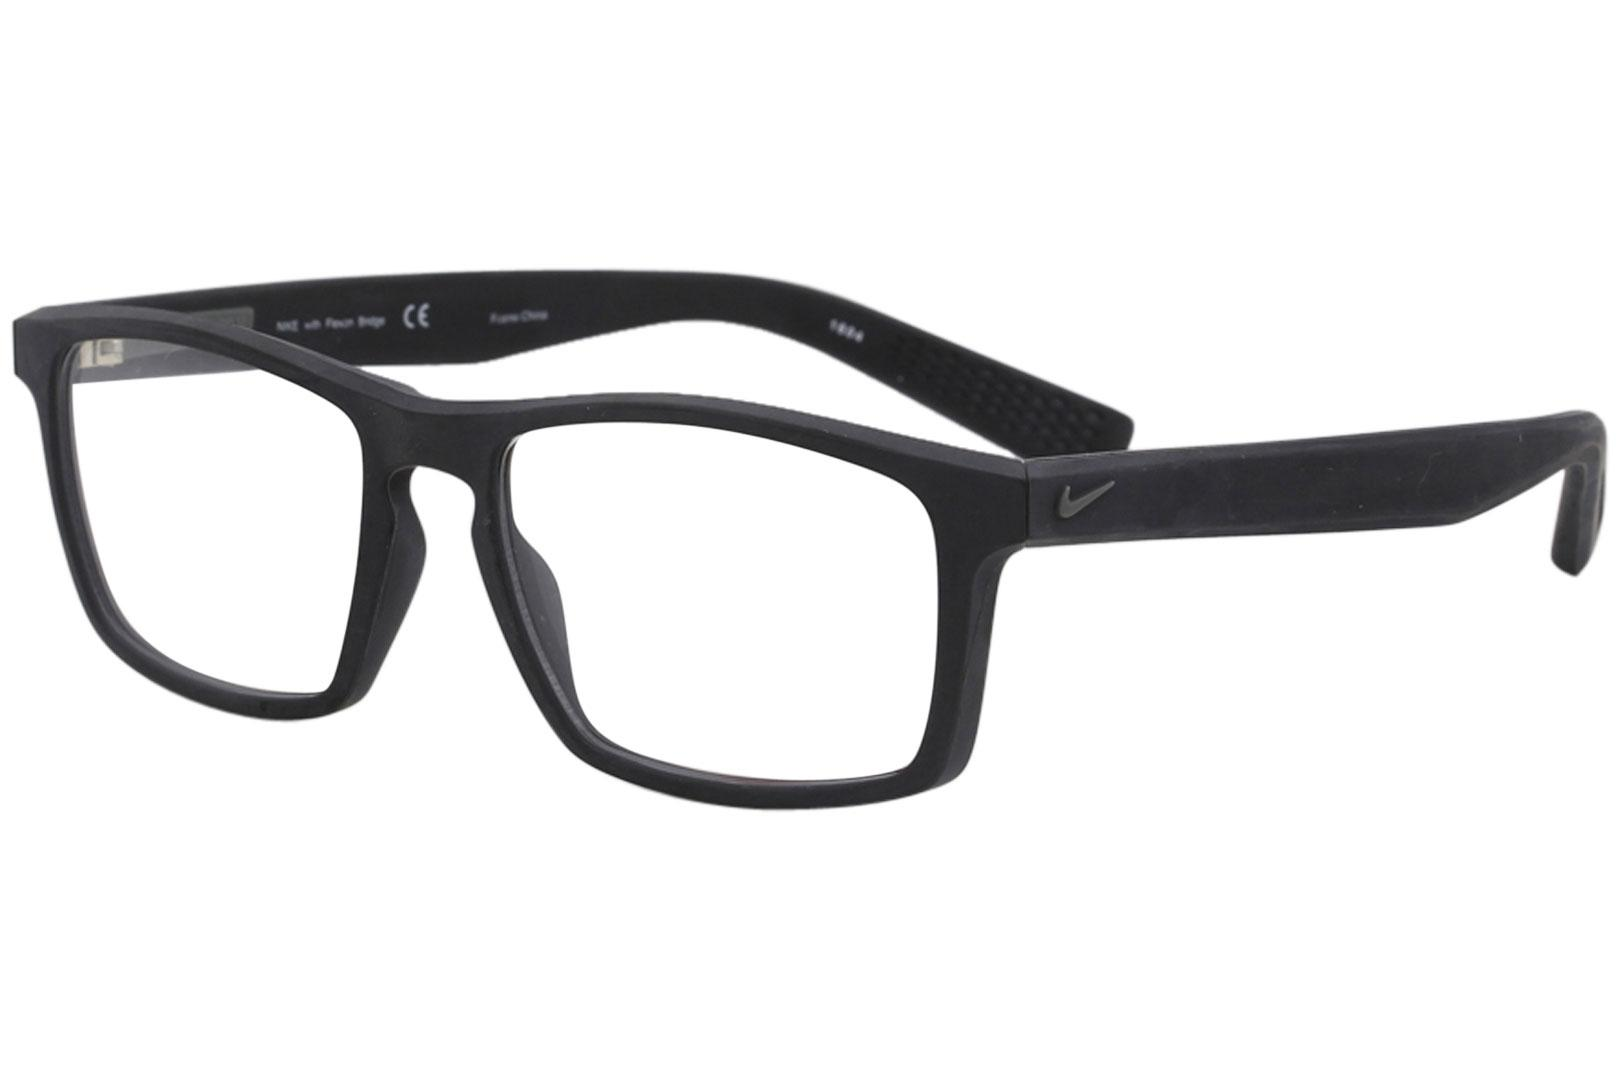 080ac74090 Nike Men s Eyeglasses 4258 Full Rim Flexon Optical Frame